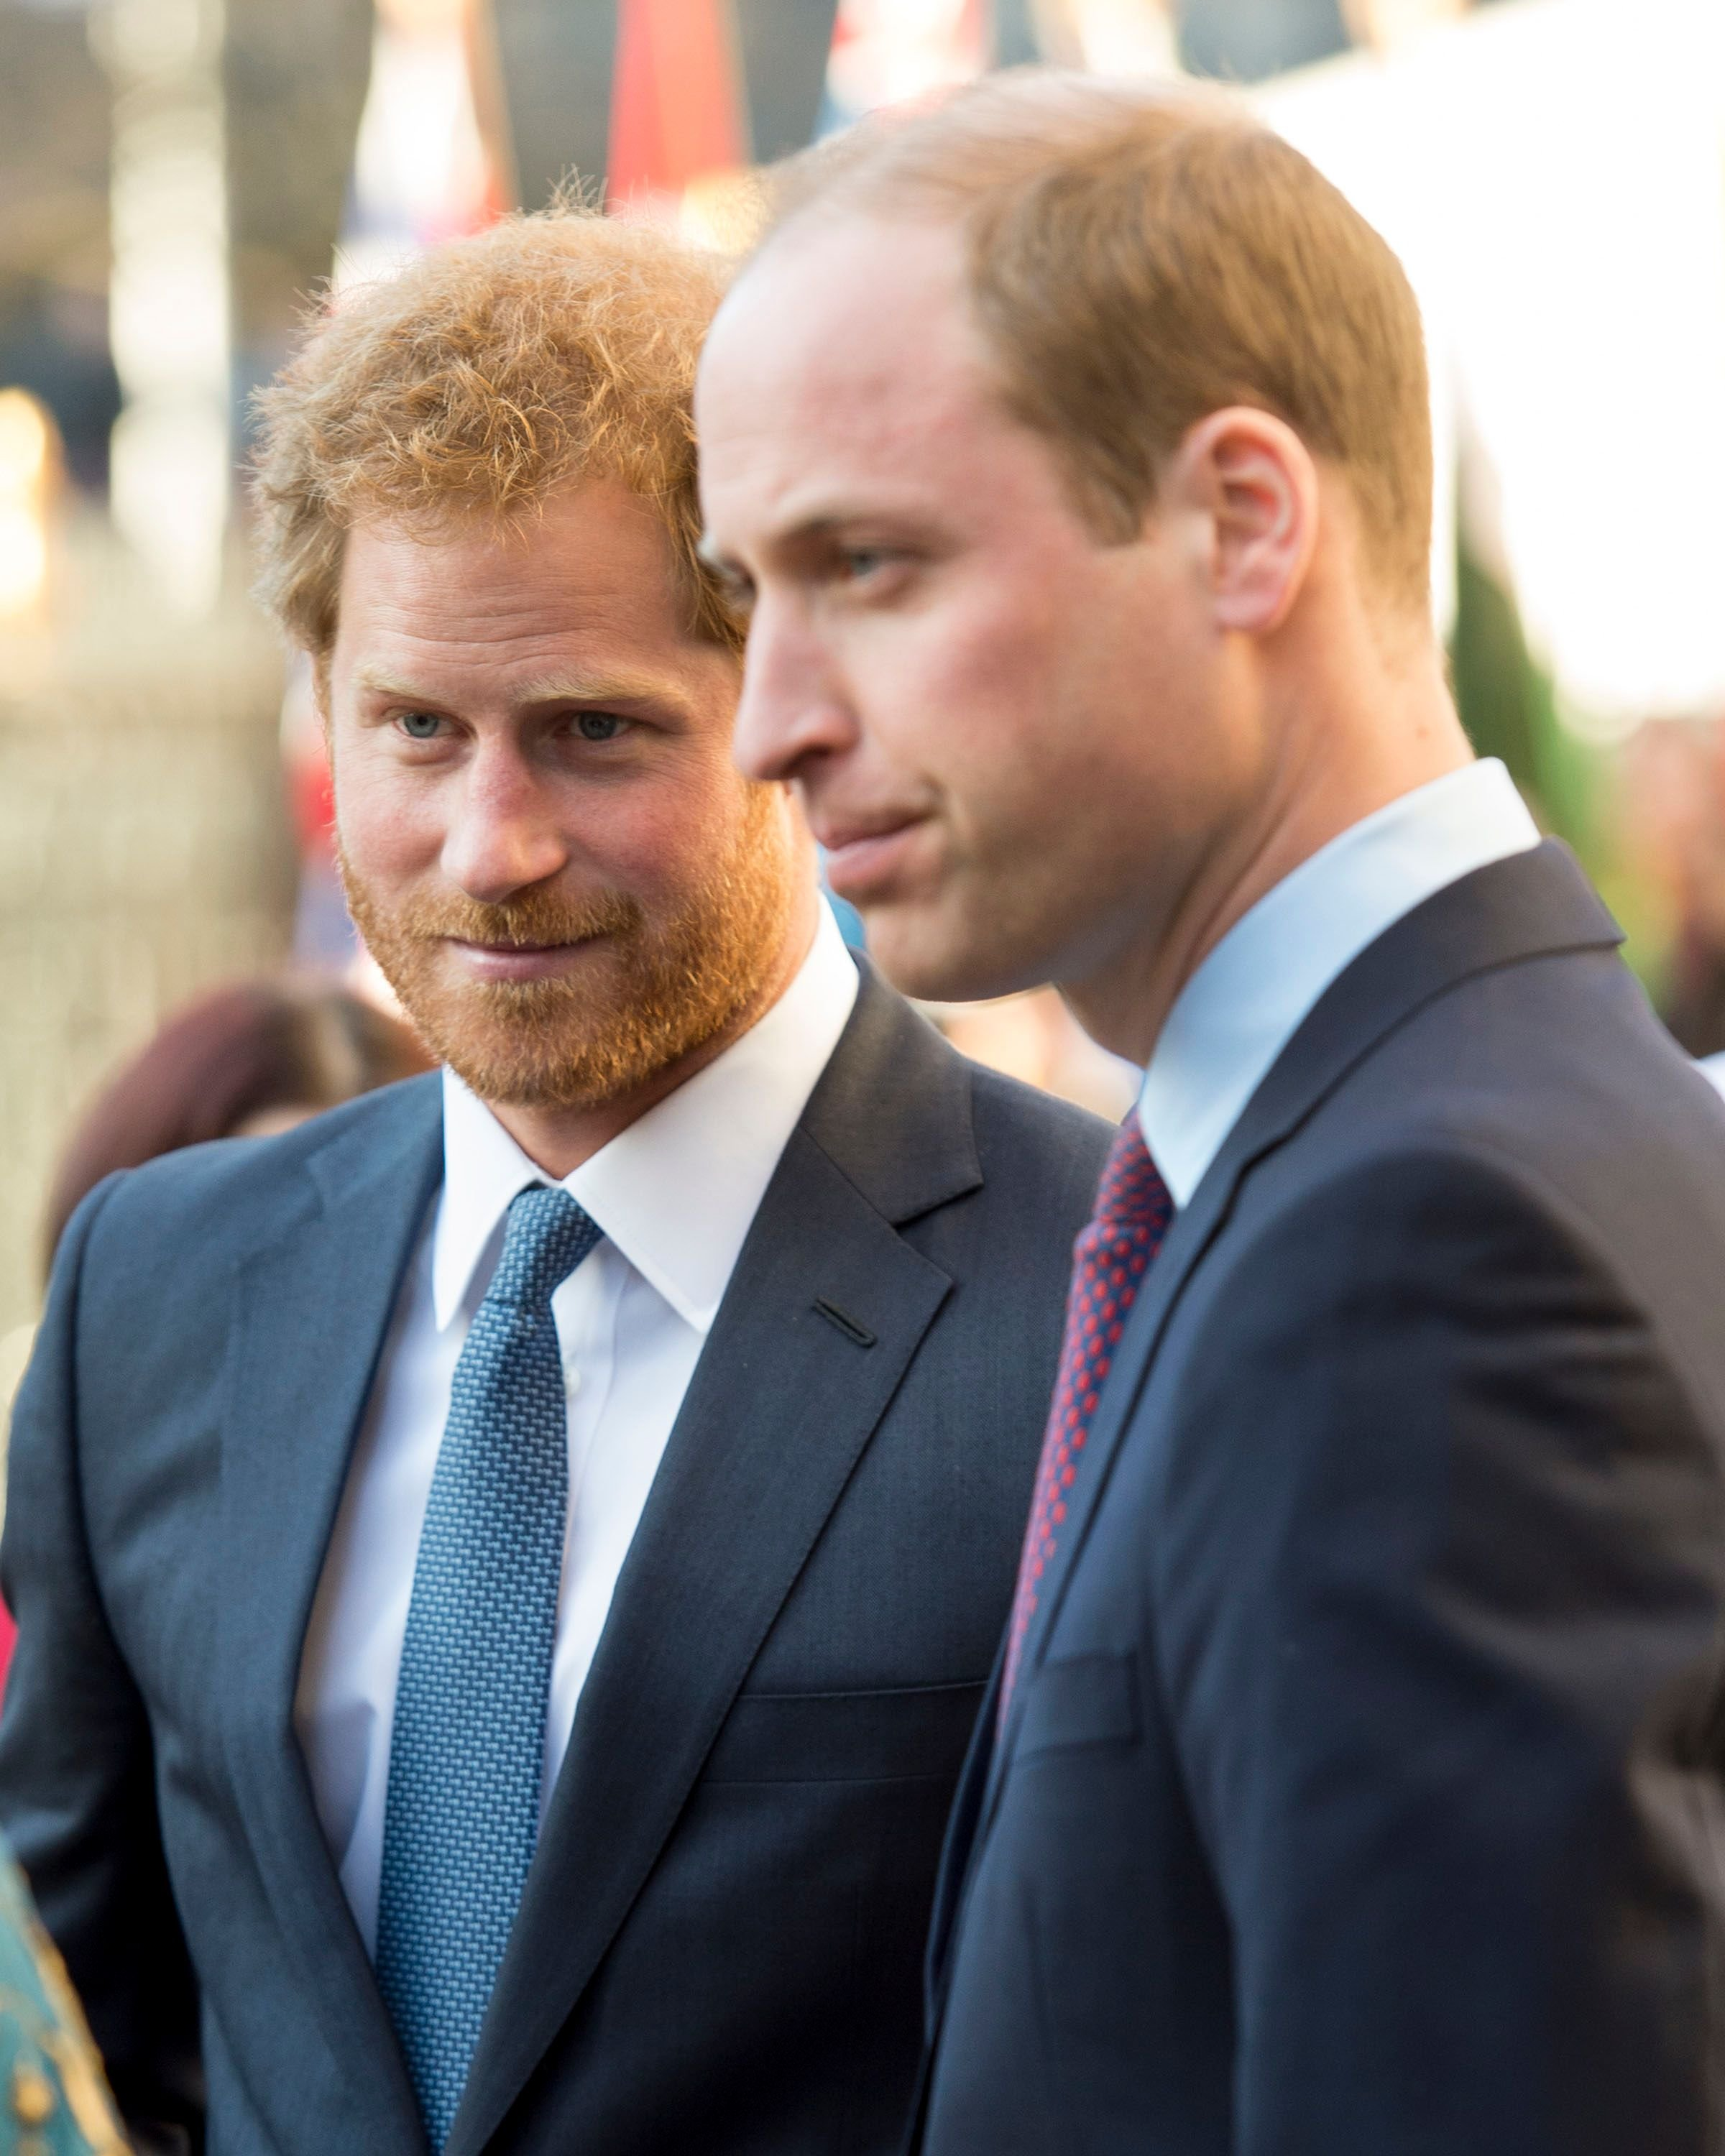 Prince Harry and Prince William at the Commonwealth Observance Day Service on March 14, 2016 in London, United Kingdom | Photo: Getty Images